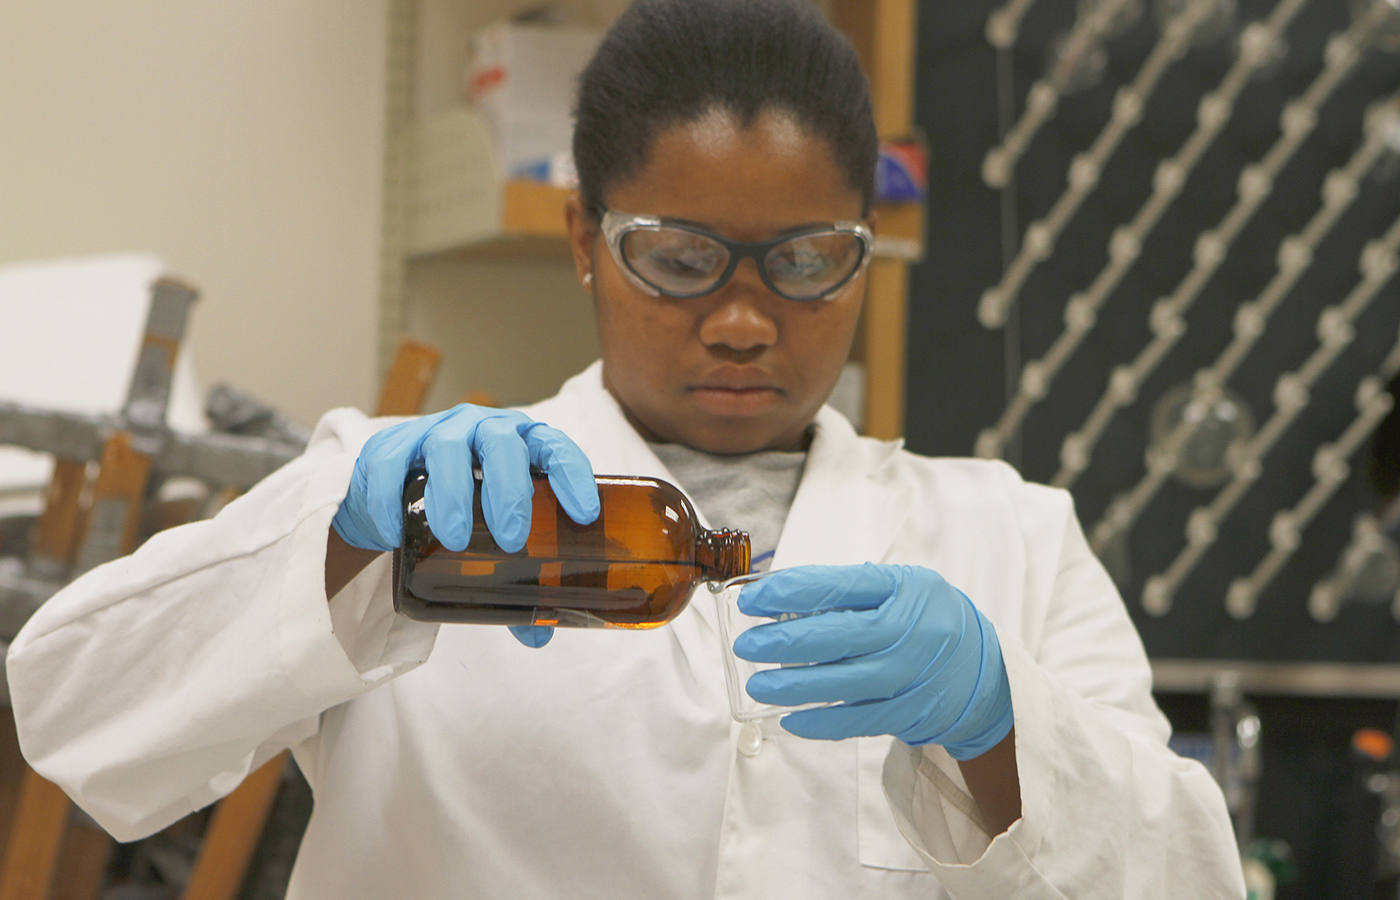 <p> Prepare For a Science Career</p>